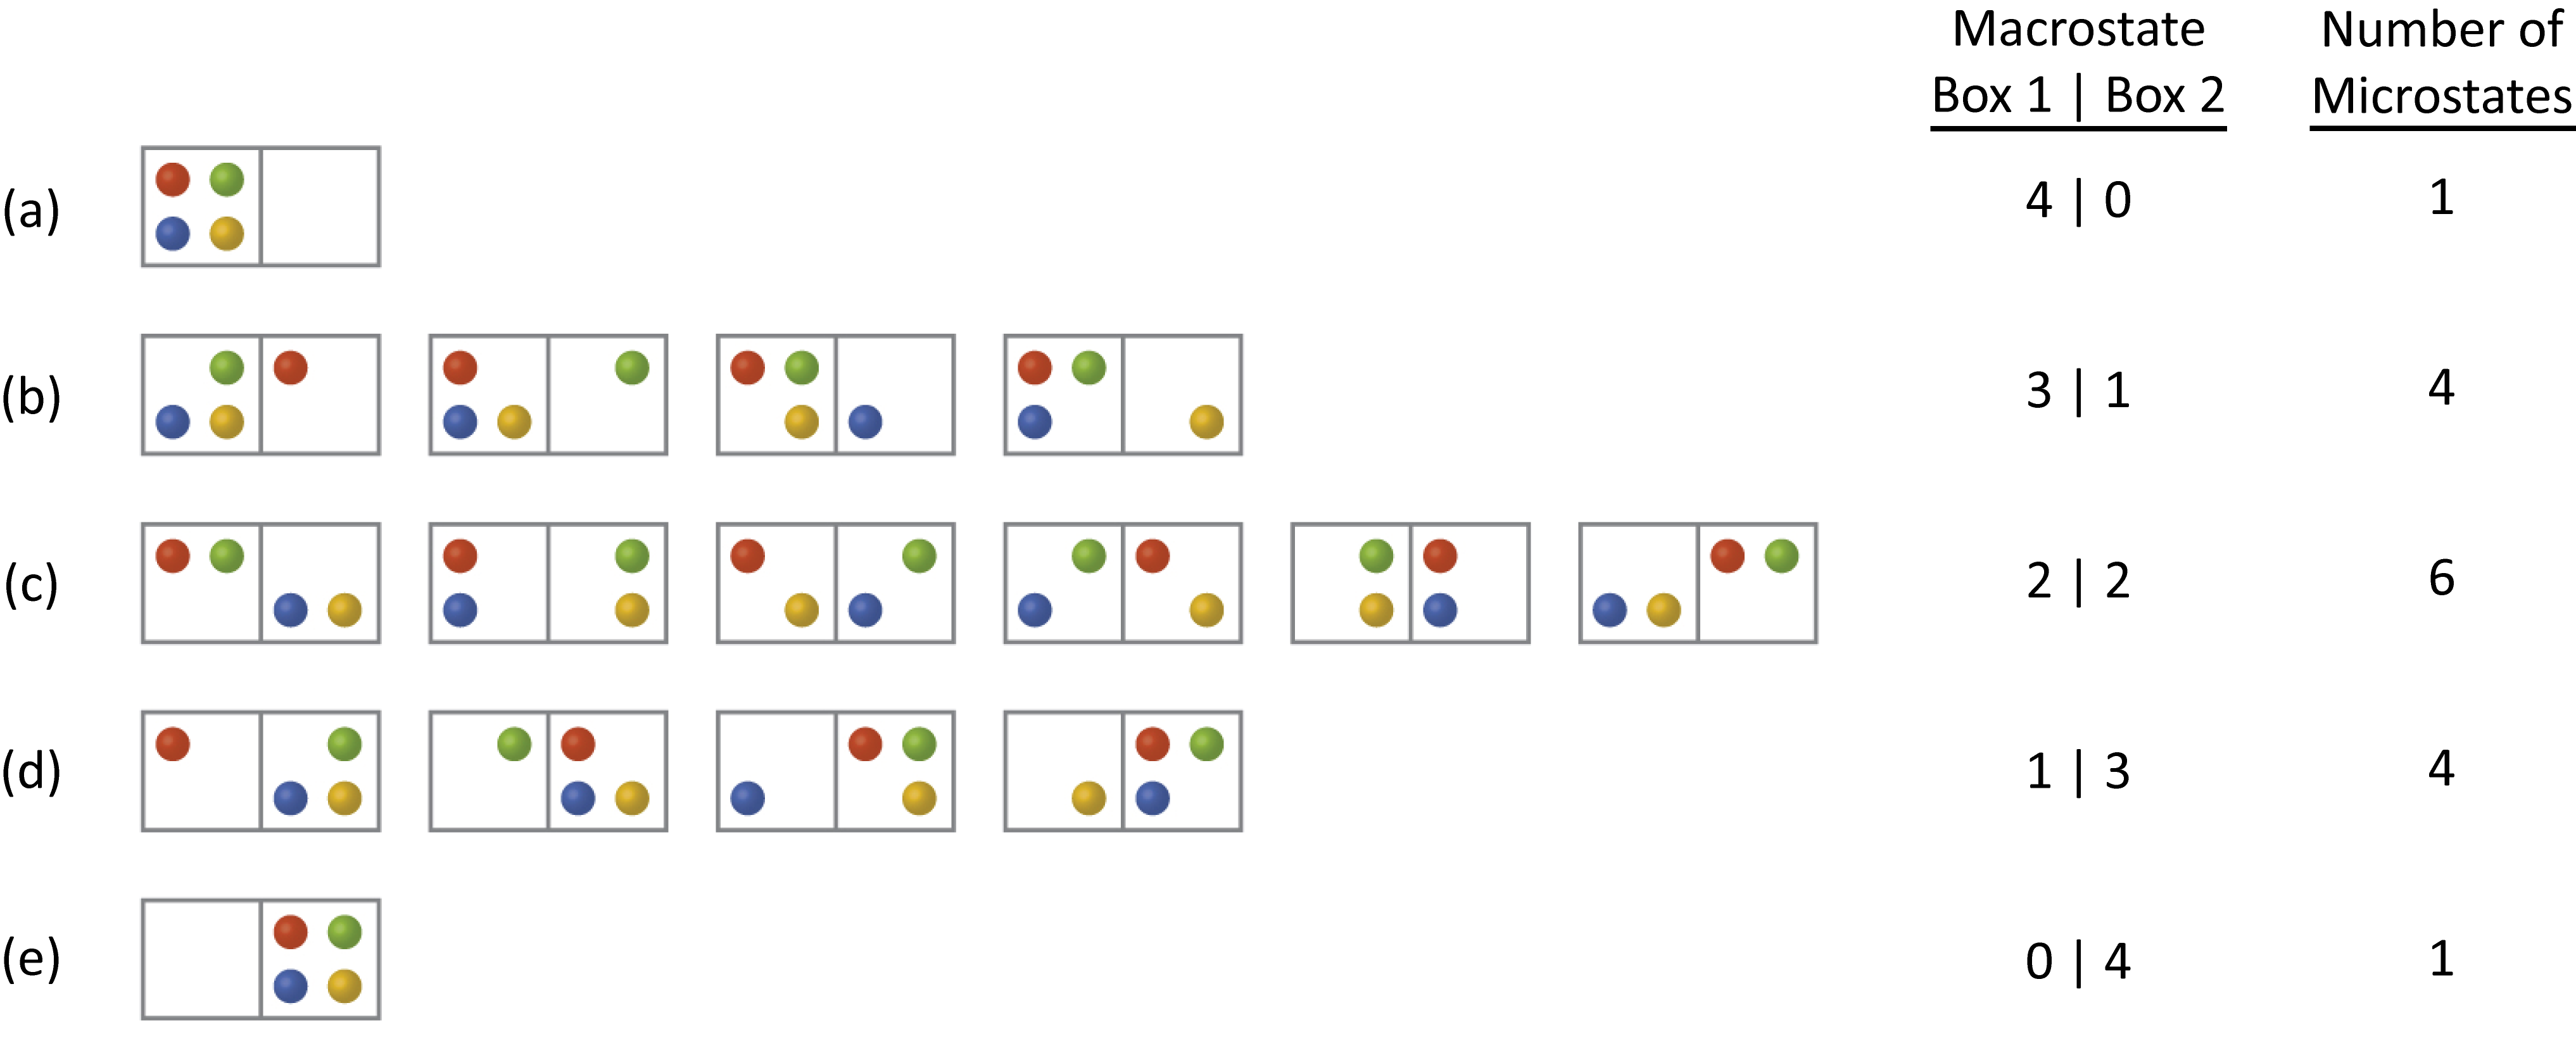 """Five rows of diagrams that look like dominoes are shown and labeled a, b, c, d, and e. Row a has one """"domino"""" that has four dots on the left side, red, green, blue and yellow in a clockwise pattern from the top left, and no dots on the right. Row b has four """"dominos,"""" each with three dots on the left and one dot on the right. The first shows a """"domino"""" with green, yellow and blue on the left and red on the right. The second """"domino"""" has yellow, blue and red on the left and green on the right. The third """"domino"""" has red, green and yellow on the left and blue on the right while the fourth has red, green and blue on the left and yellow on the right. Row c has six """"dominos"""", each with two dots on either side. The first has a red and green on the left and a blue and yellow on the right. The second has a red and blue on the left and a green and yellow on the right while the third has a yellow and red on the left and a green and blue on the right. The fourth has a green and blue on the left and a red and yellow on the right. The fifth has a green and yellow on the left and a red and blue on the right. The sixth has a blue and yellow on the left and a green and red on the right. Row d has four """"dominos,"""" each with one dot on the left and three on the right. The first """"domino"""" has red on the left and a blue, green and yellow on the right. The second has a green on the left and a red, yellow and blue on the right. The third has a blue on the left and a red, green and yellow on the right. The fourth has a yellow on the left and a red, green and blue on the right. Row e has 1 """"domino"""" with no dots on the left and four dots on the right that are red, green, blue and yellow. To the right of the dominoes are two columns. The first column is labeled """"Macrostate, Box 1 